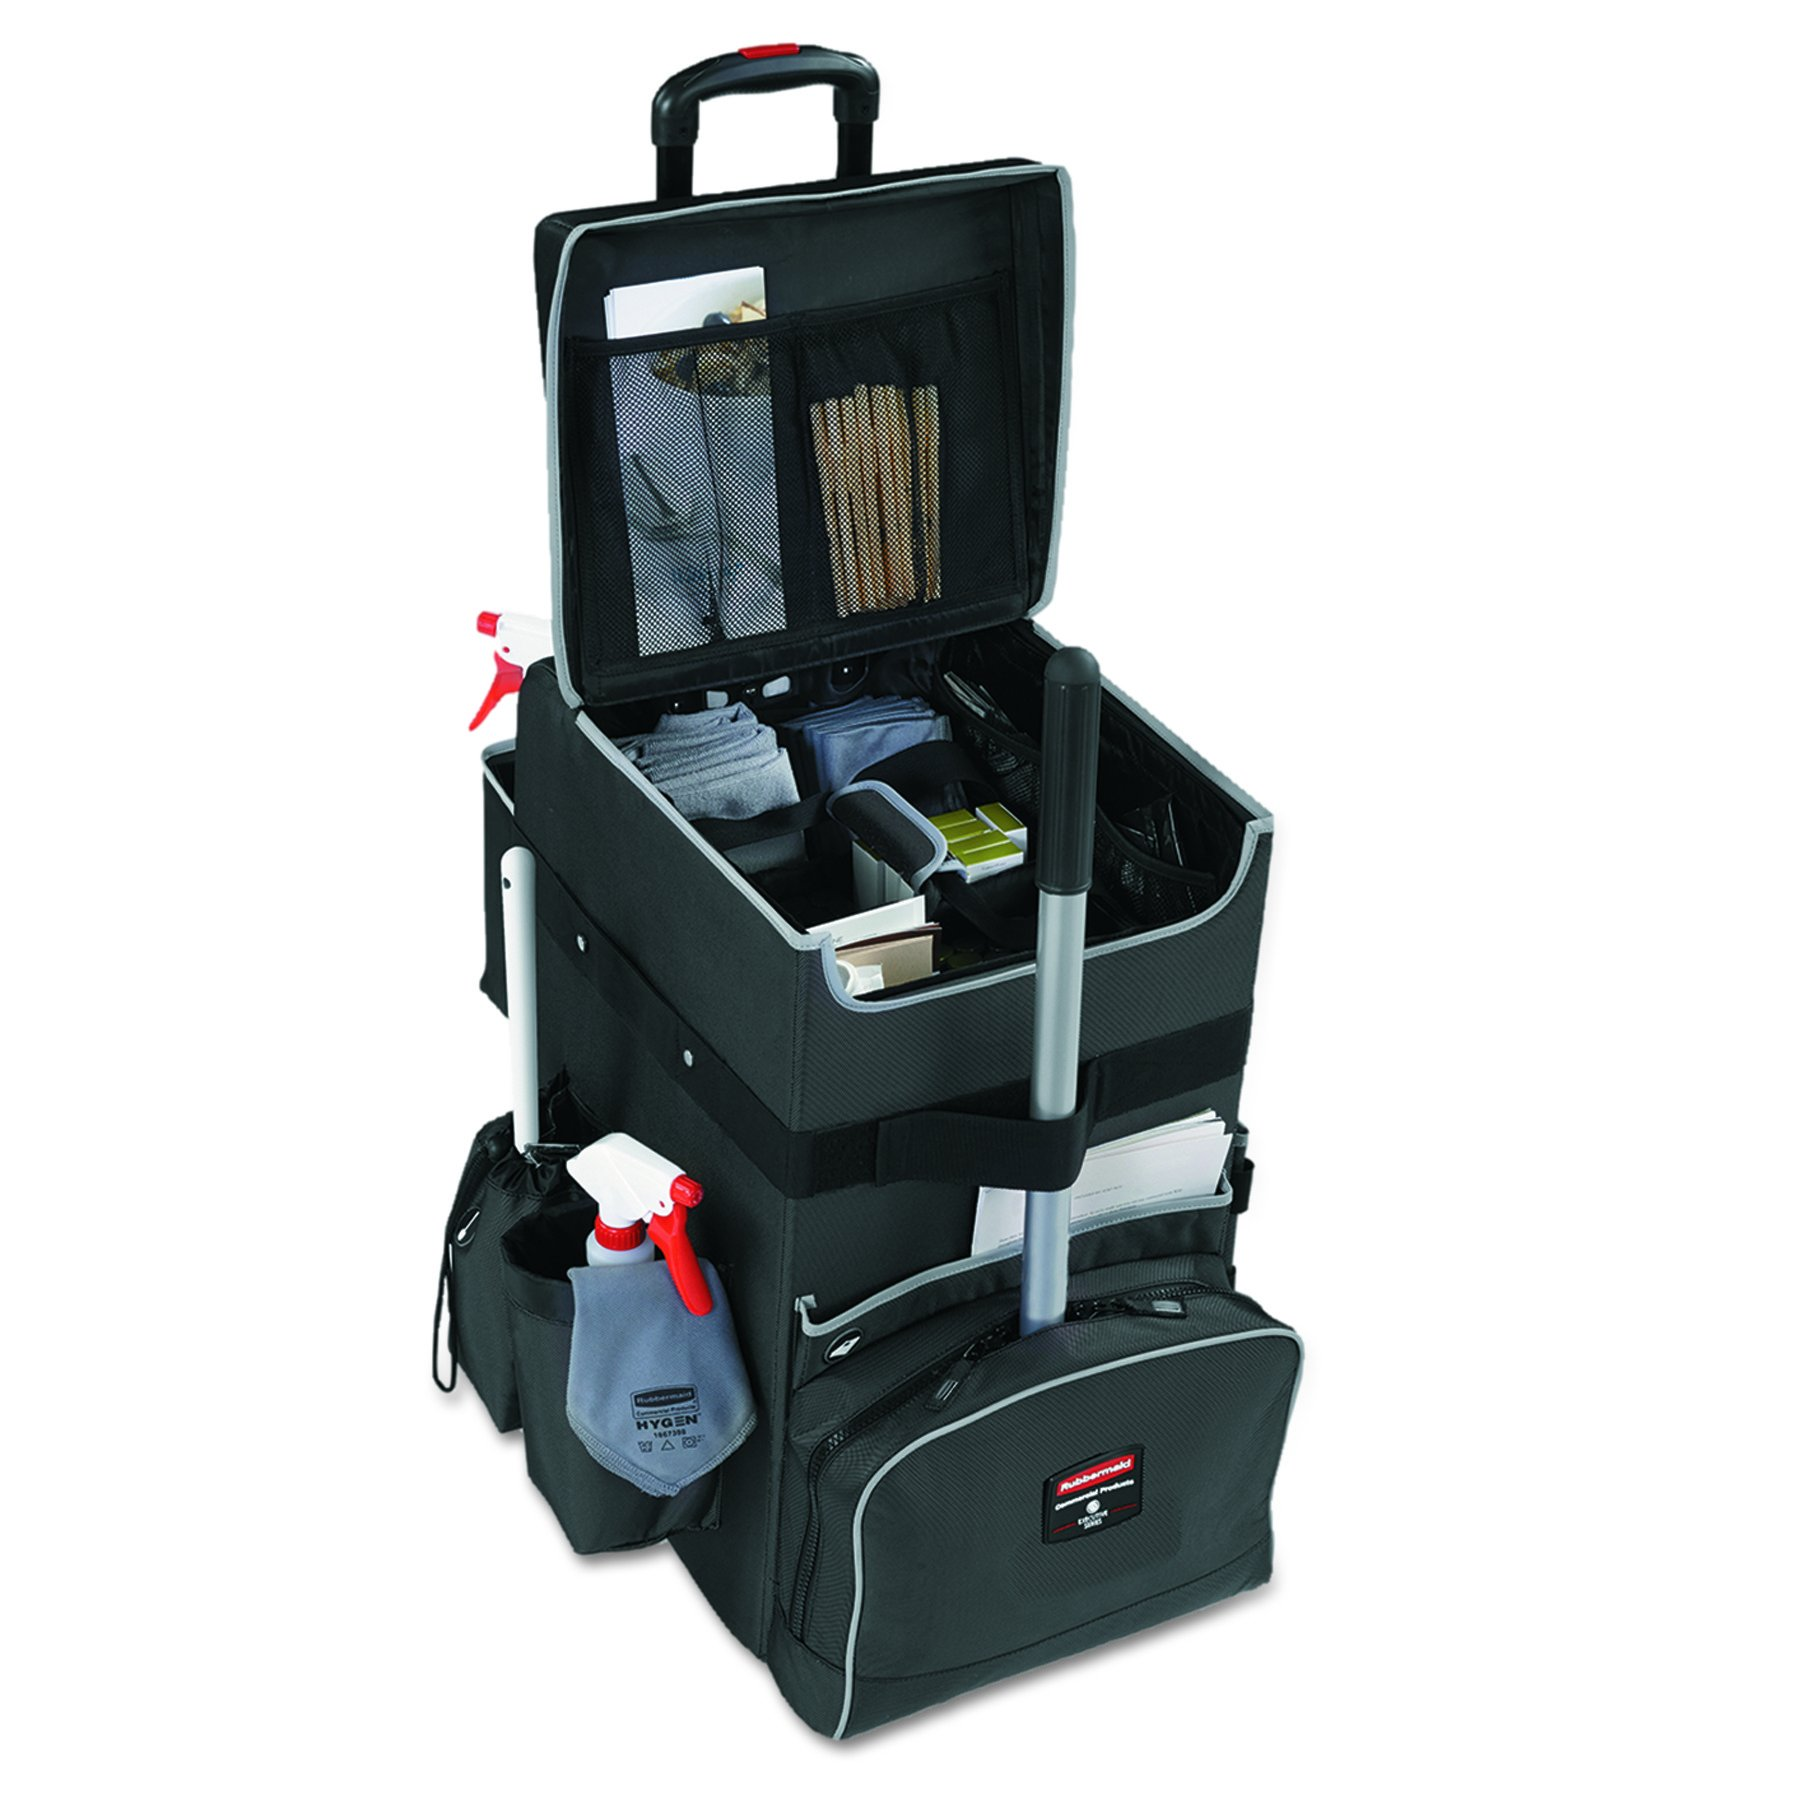 Rubbermaid Commercial Products Executive Janitorial Housekeeping Quick Cart, Large, 1902465 by Rubbermaid Commercial Products